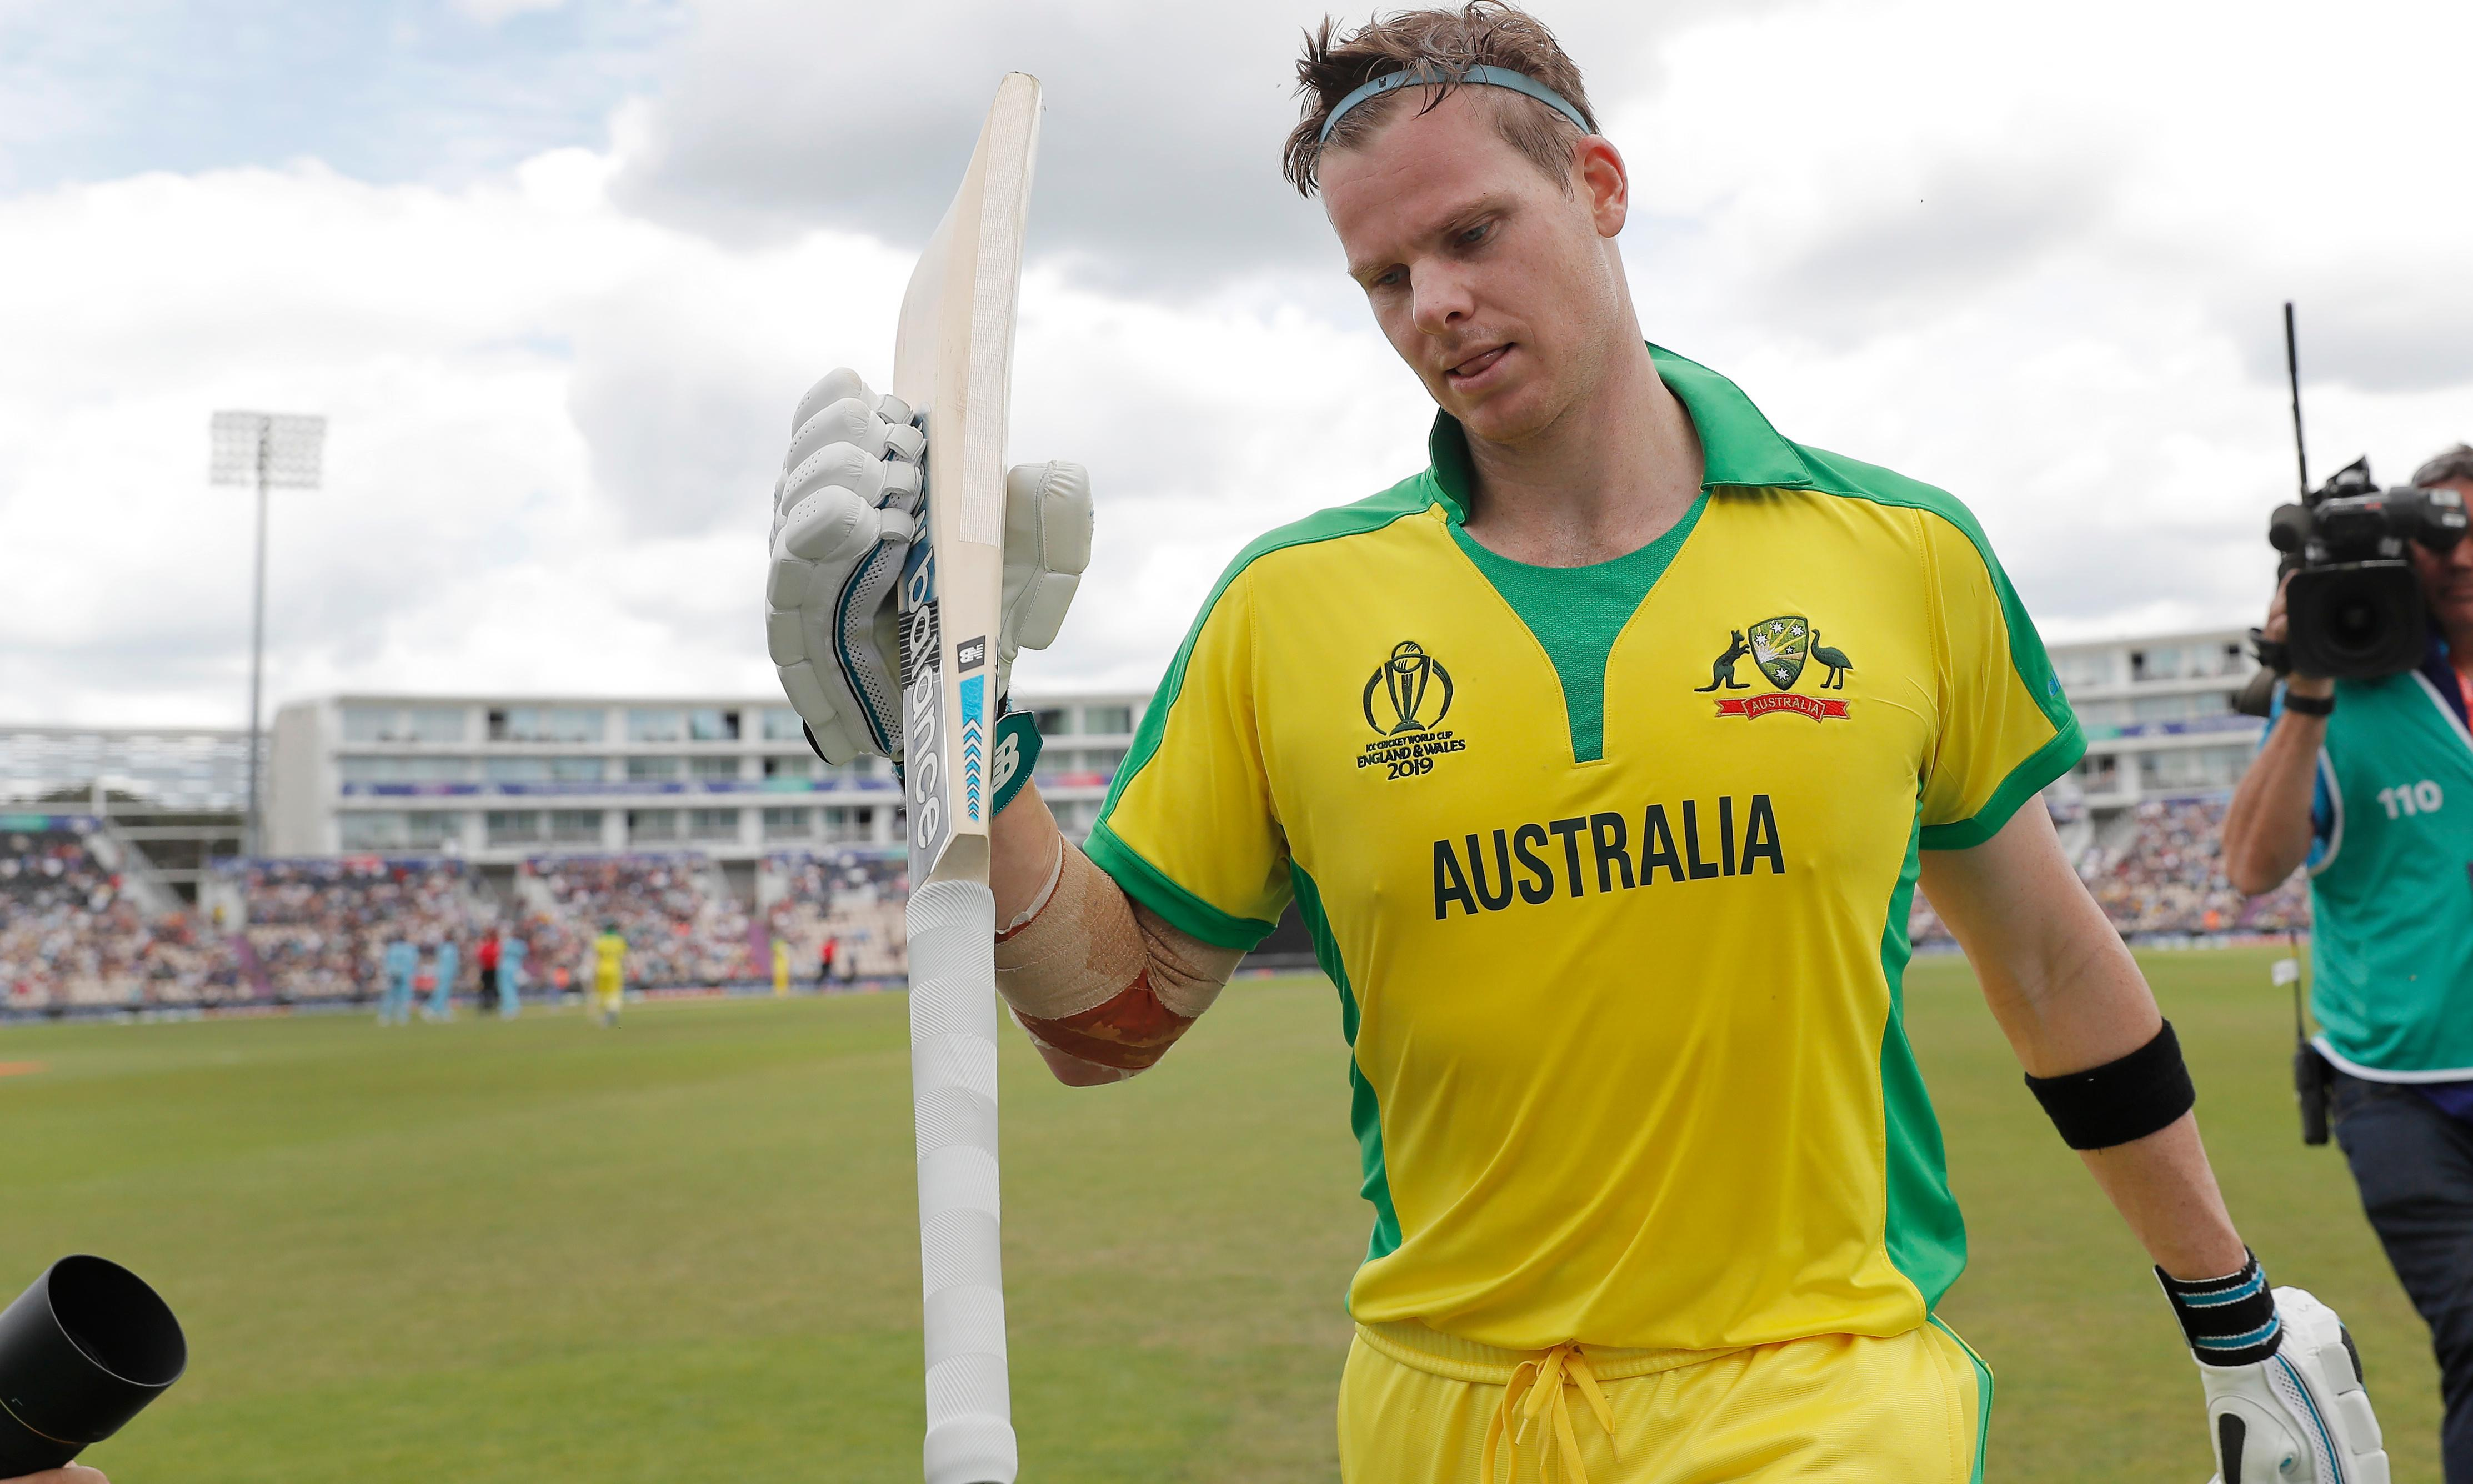 Steve Smith's century gives Australia World Cup warm-up win over England